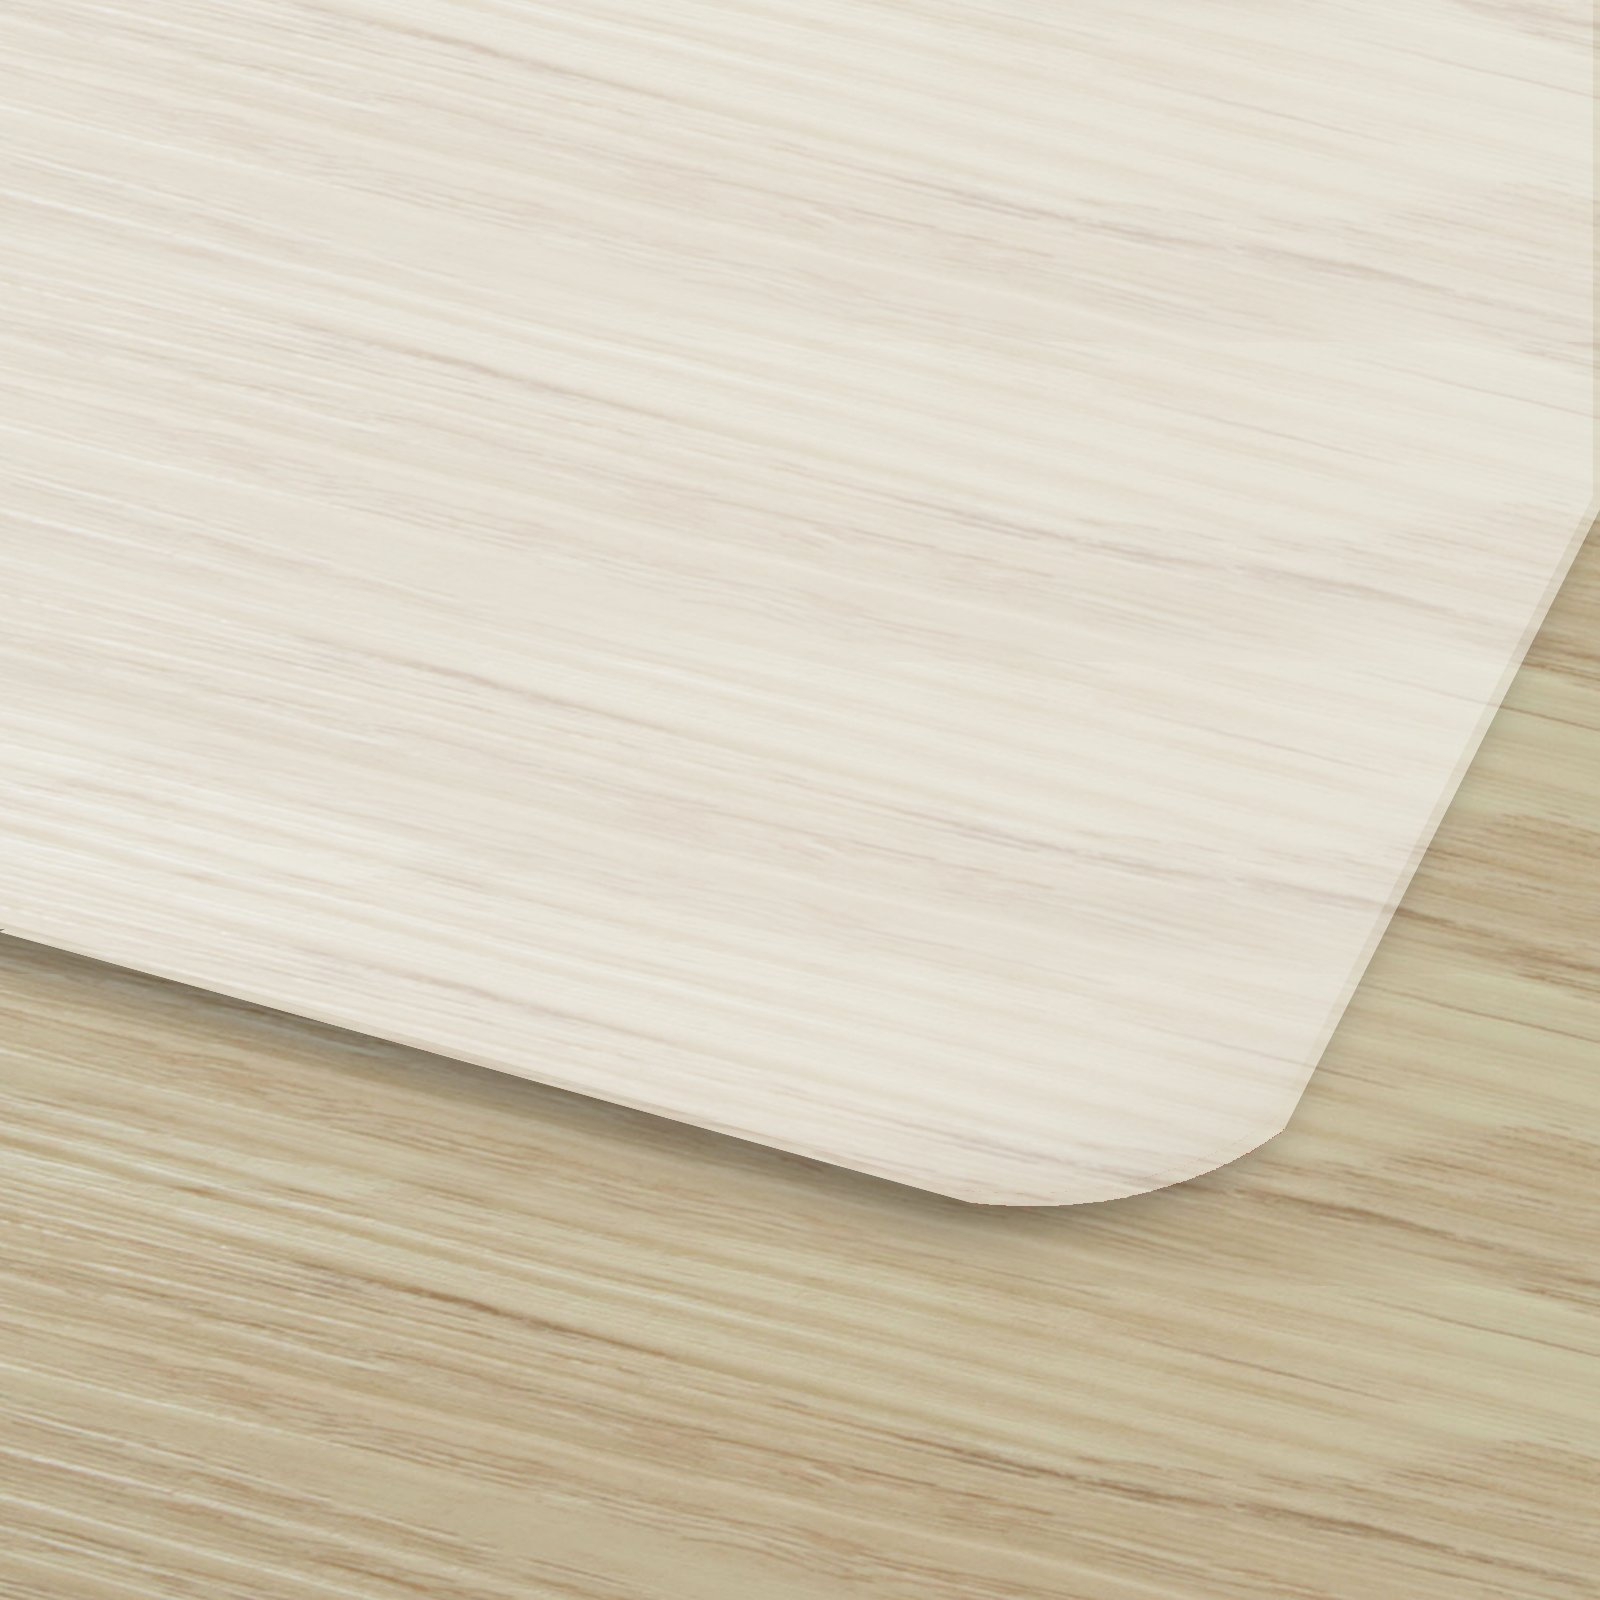 Office Chair Mat for Hardwood Floor   Opaque Office Floor Mat   BPA, Phthalate and Odor Free   Multiple Sizes Available- 48'' x 60'' by OfficeMarshal (Image #2)